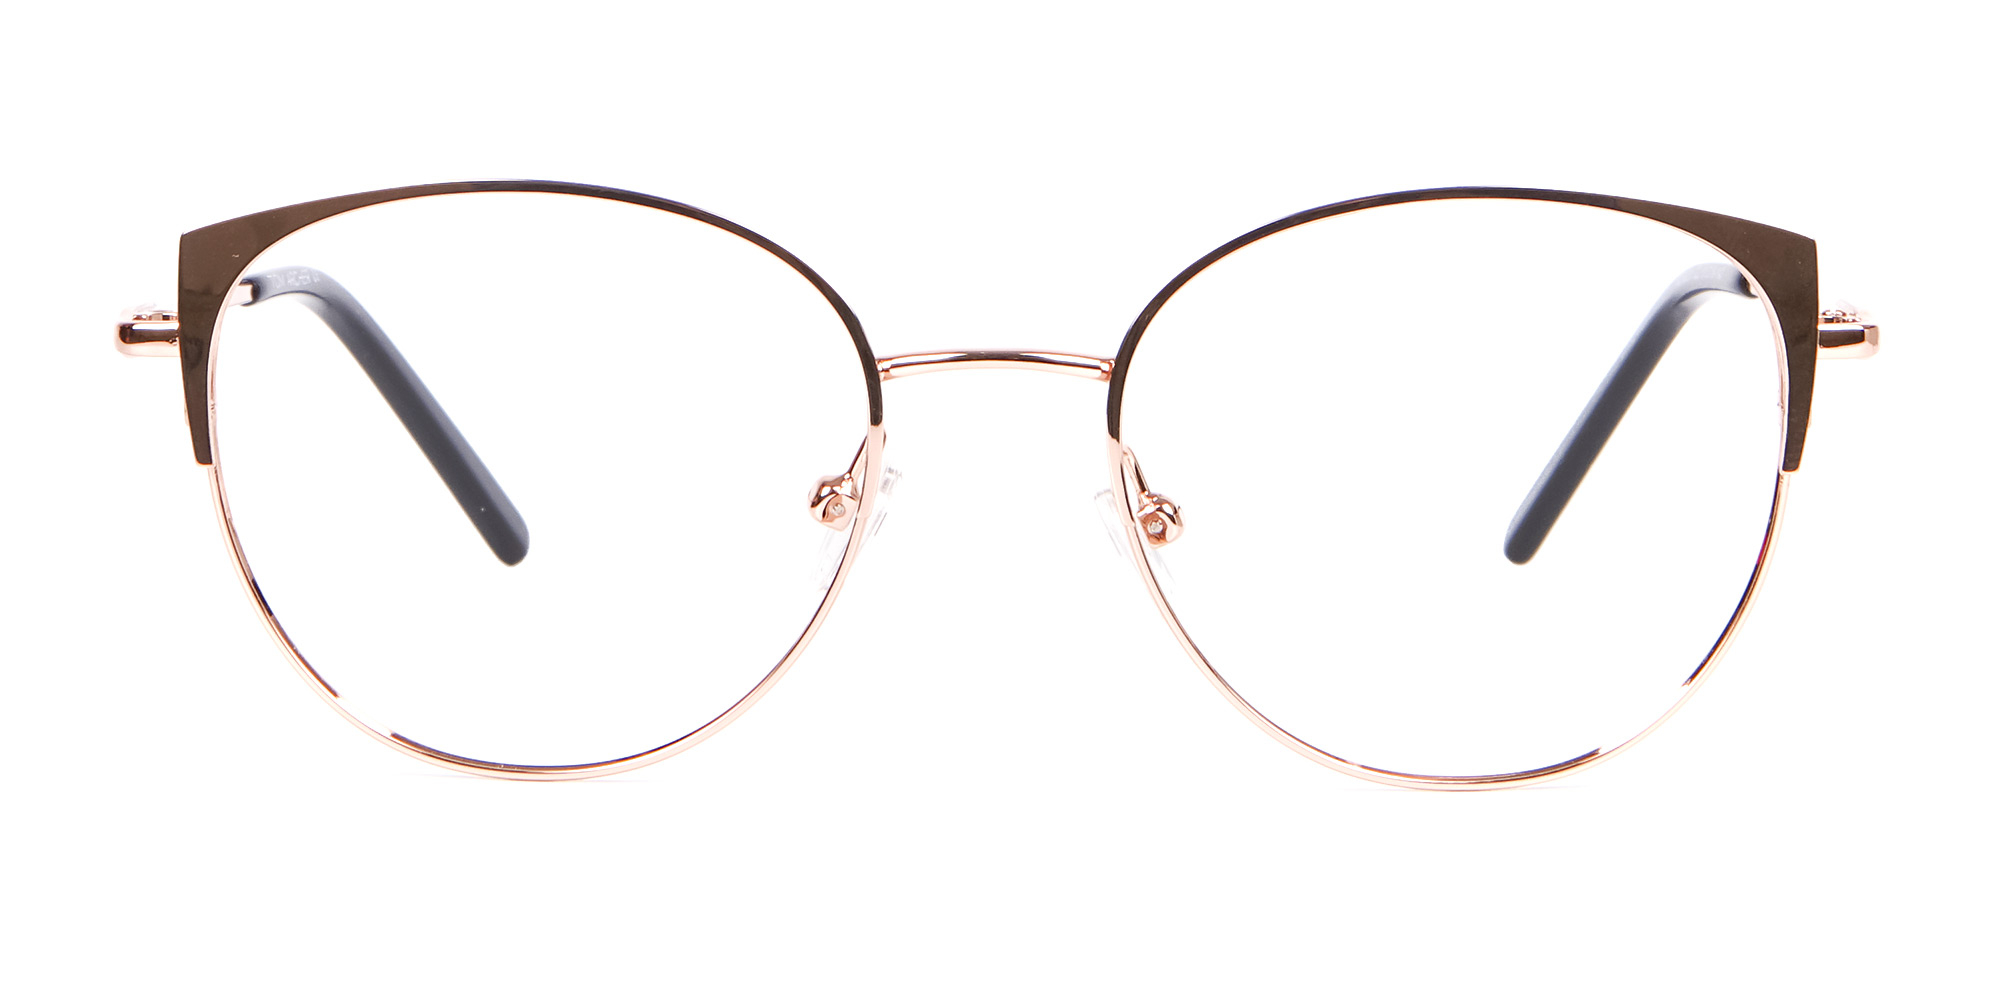 Rose Gold Glasses in Round and Cat-Eye glasses for triangle face shape